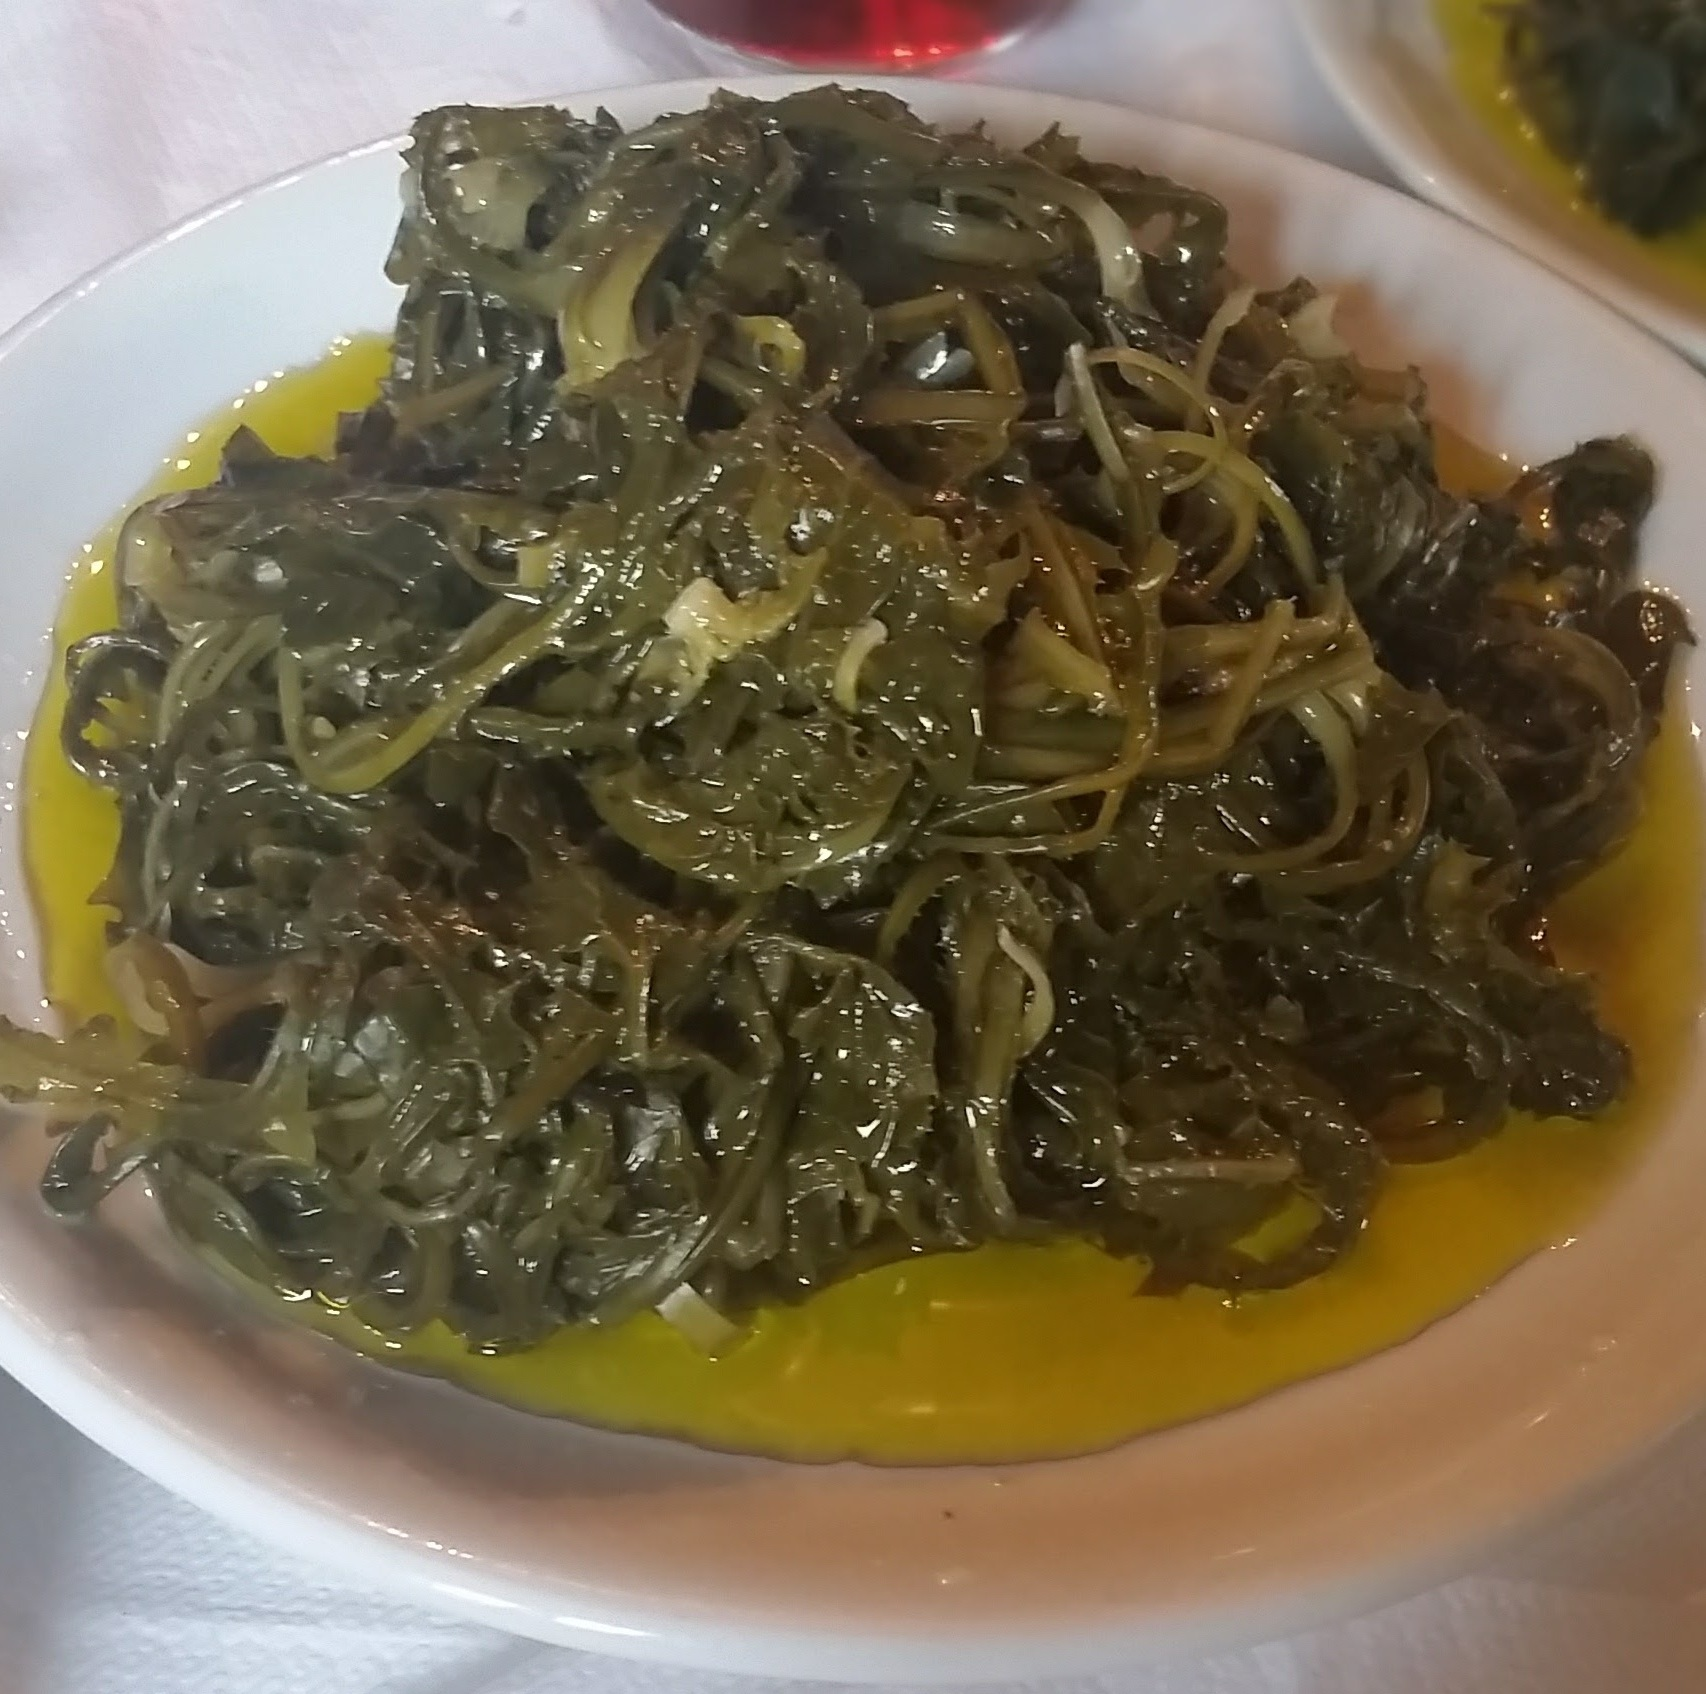 Wild greens (horta) served with olive oil in Greece